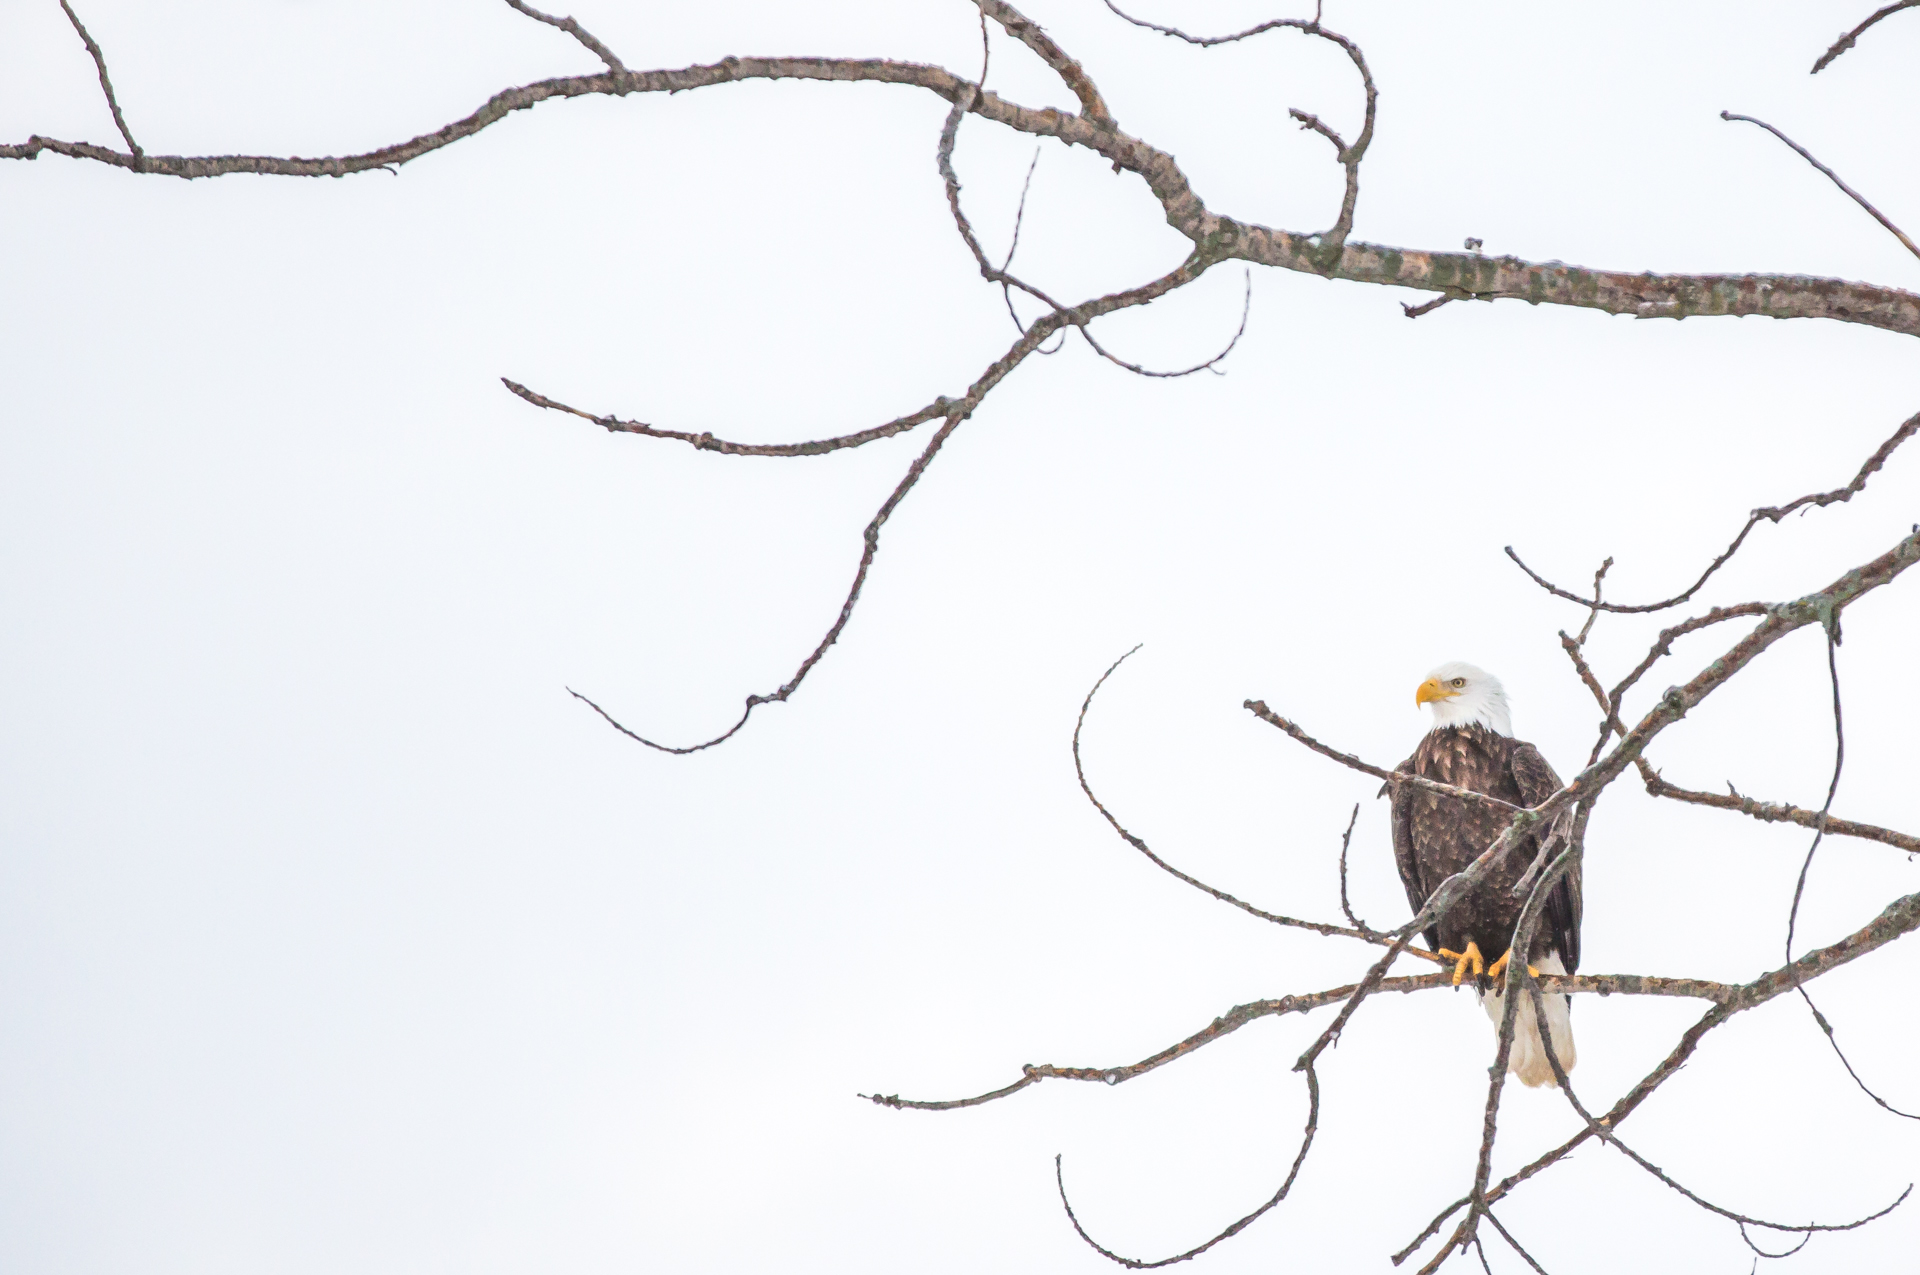 A Bald Eagle overlooking the Mississippi river looking for his breakfast.